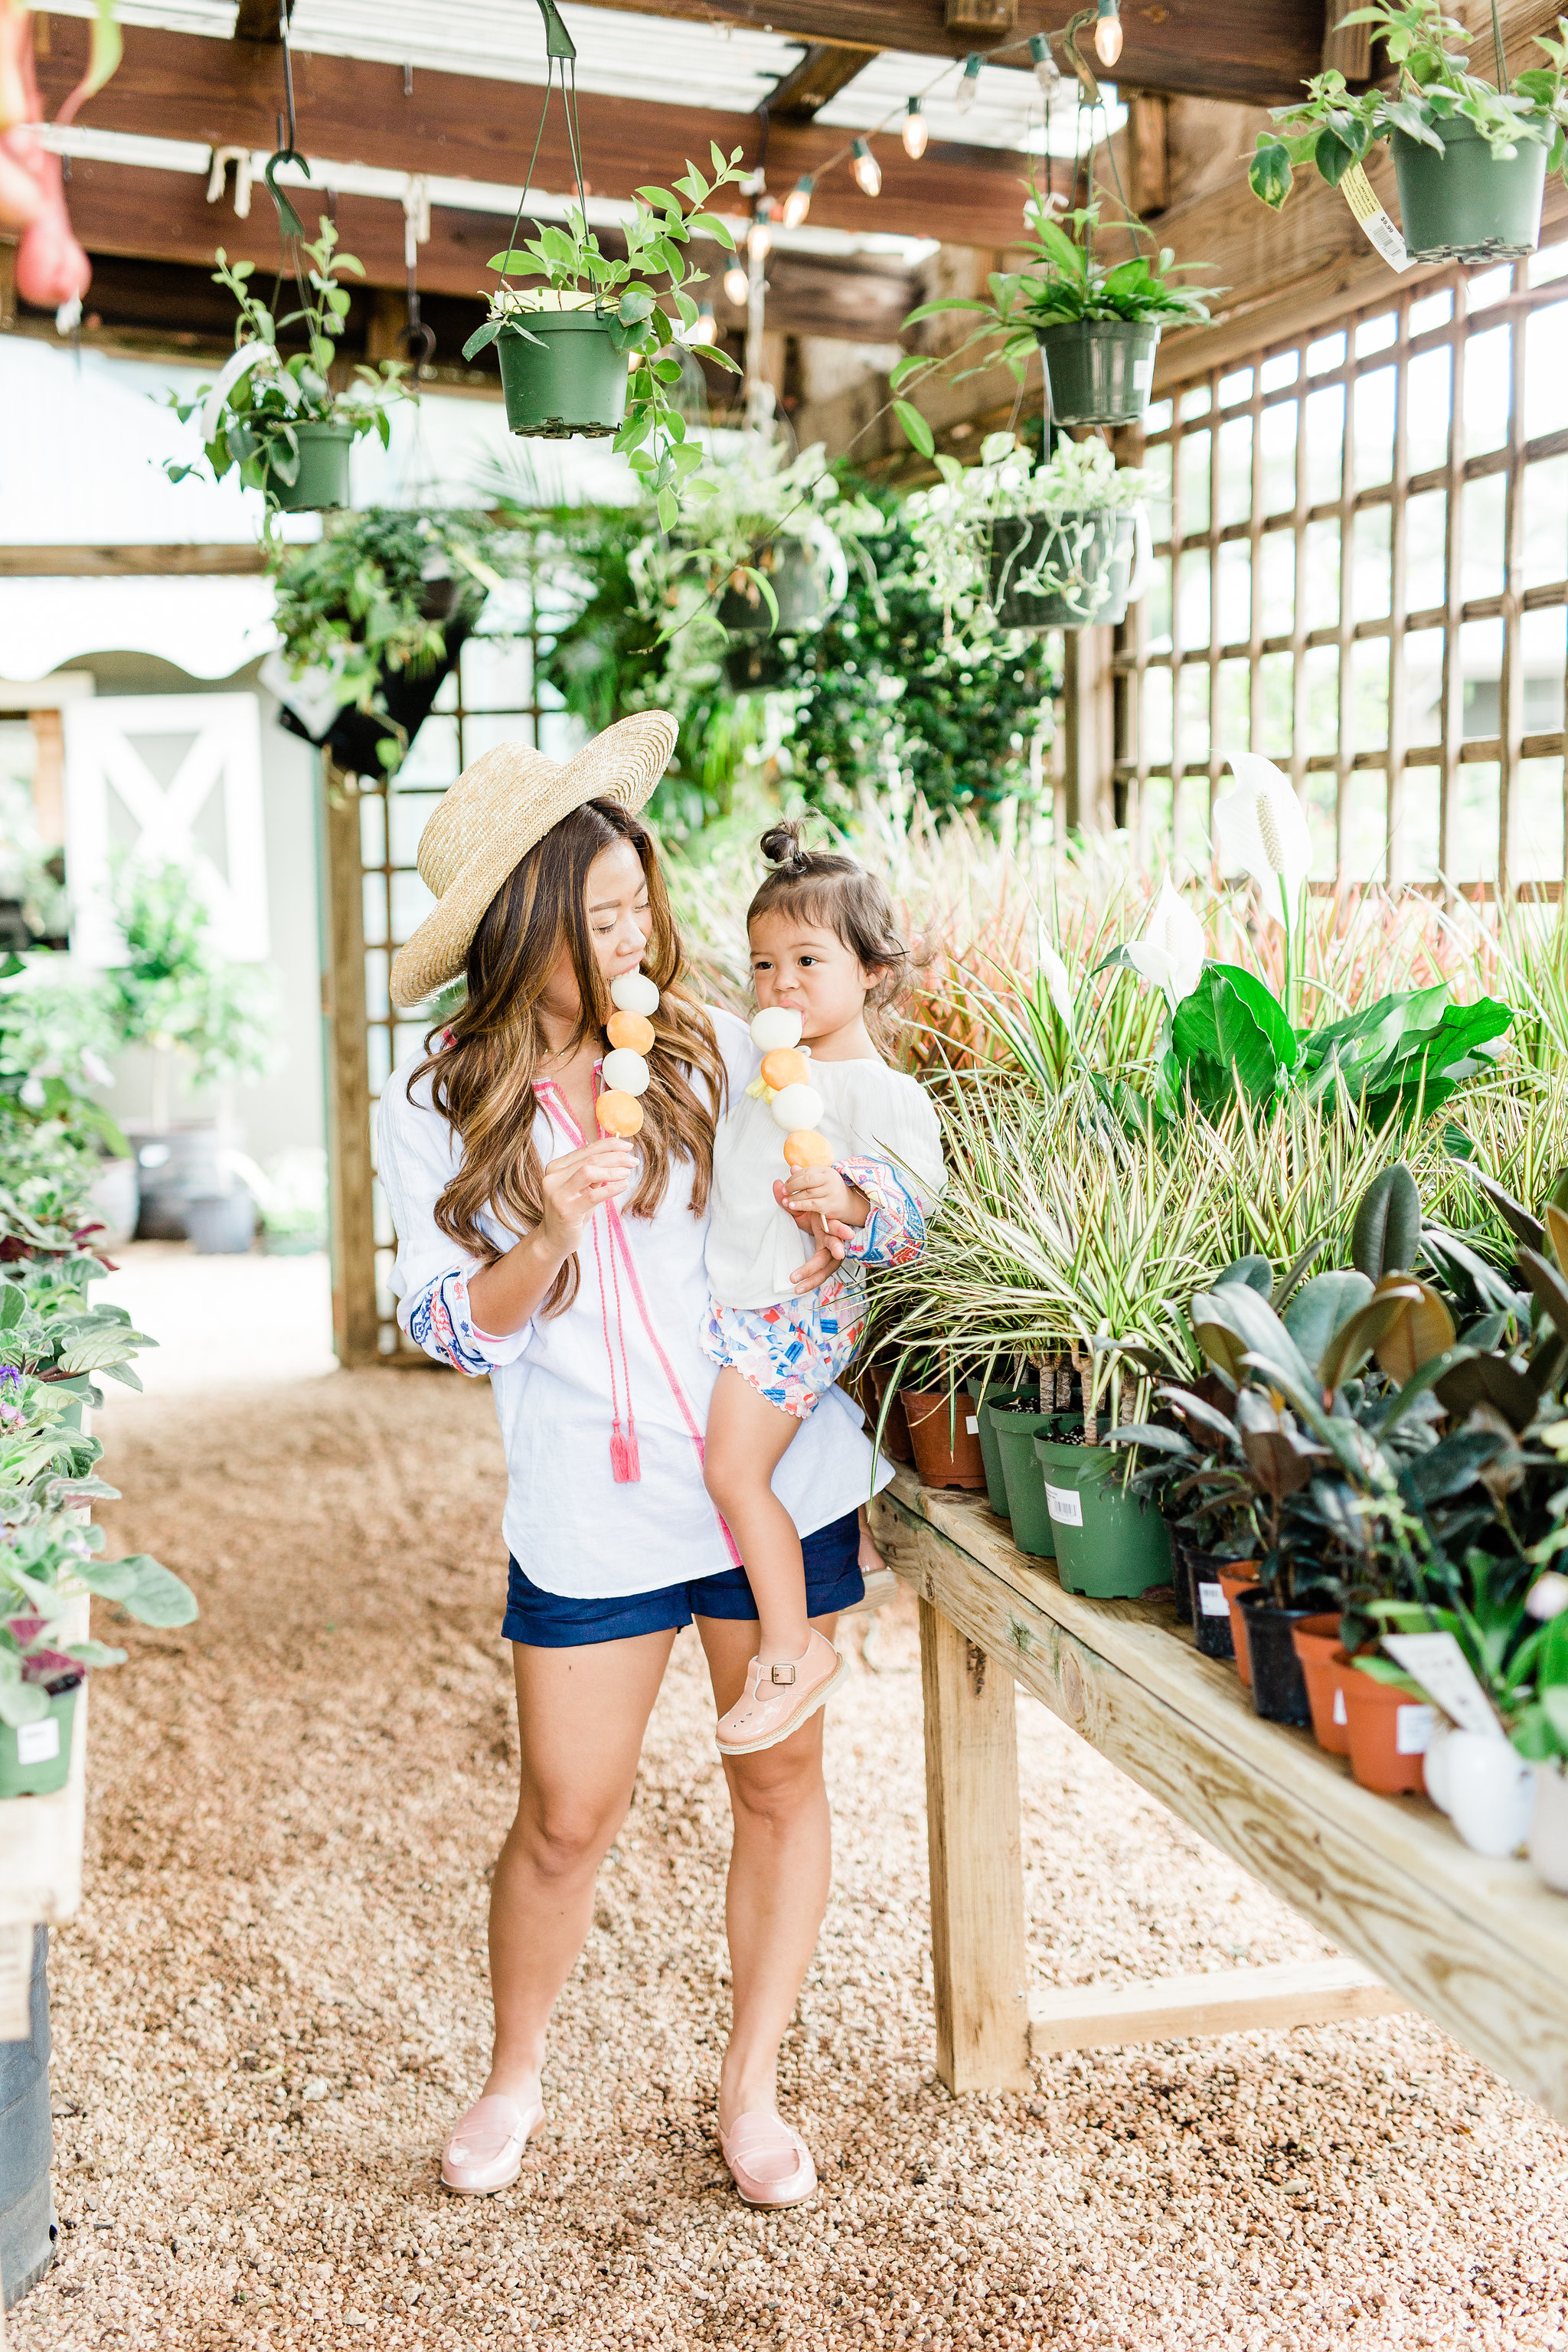 Joules Mommy and me Matching Outfit French Navy Kat Linen Shorts White Creme Yolanda Long Sleeve Embroidered Top 1.jpg